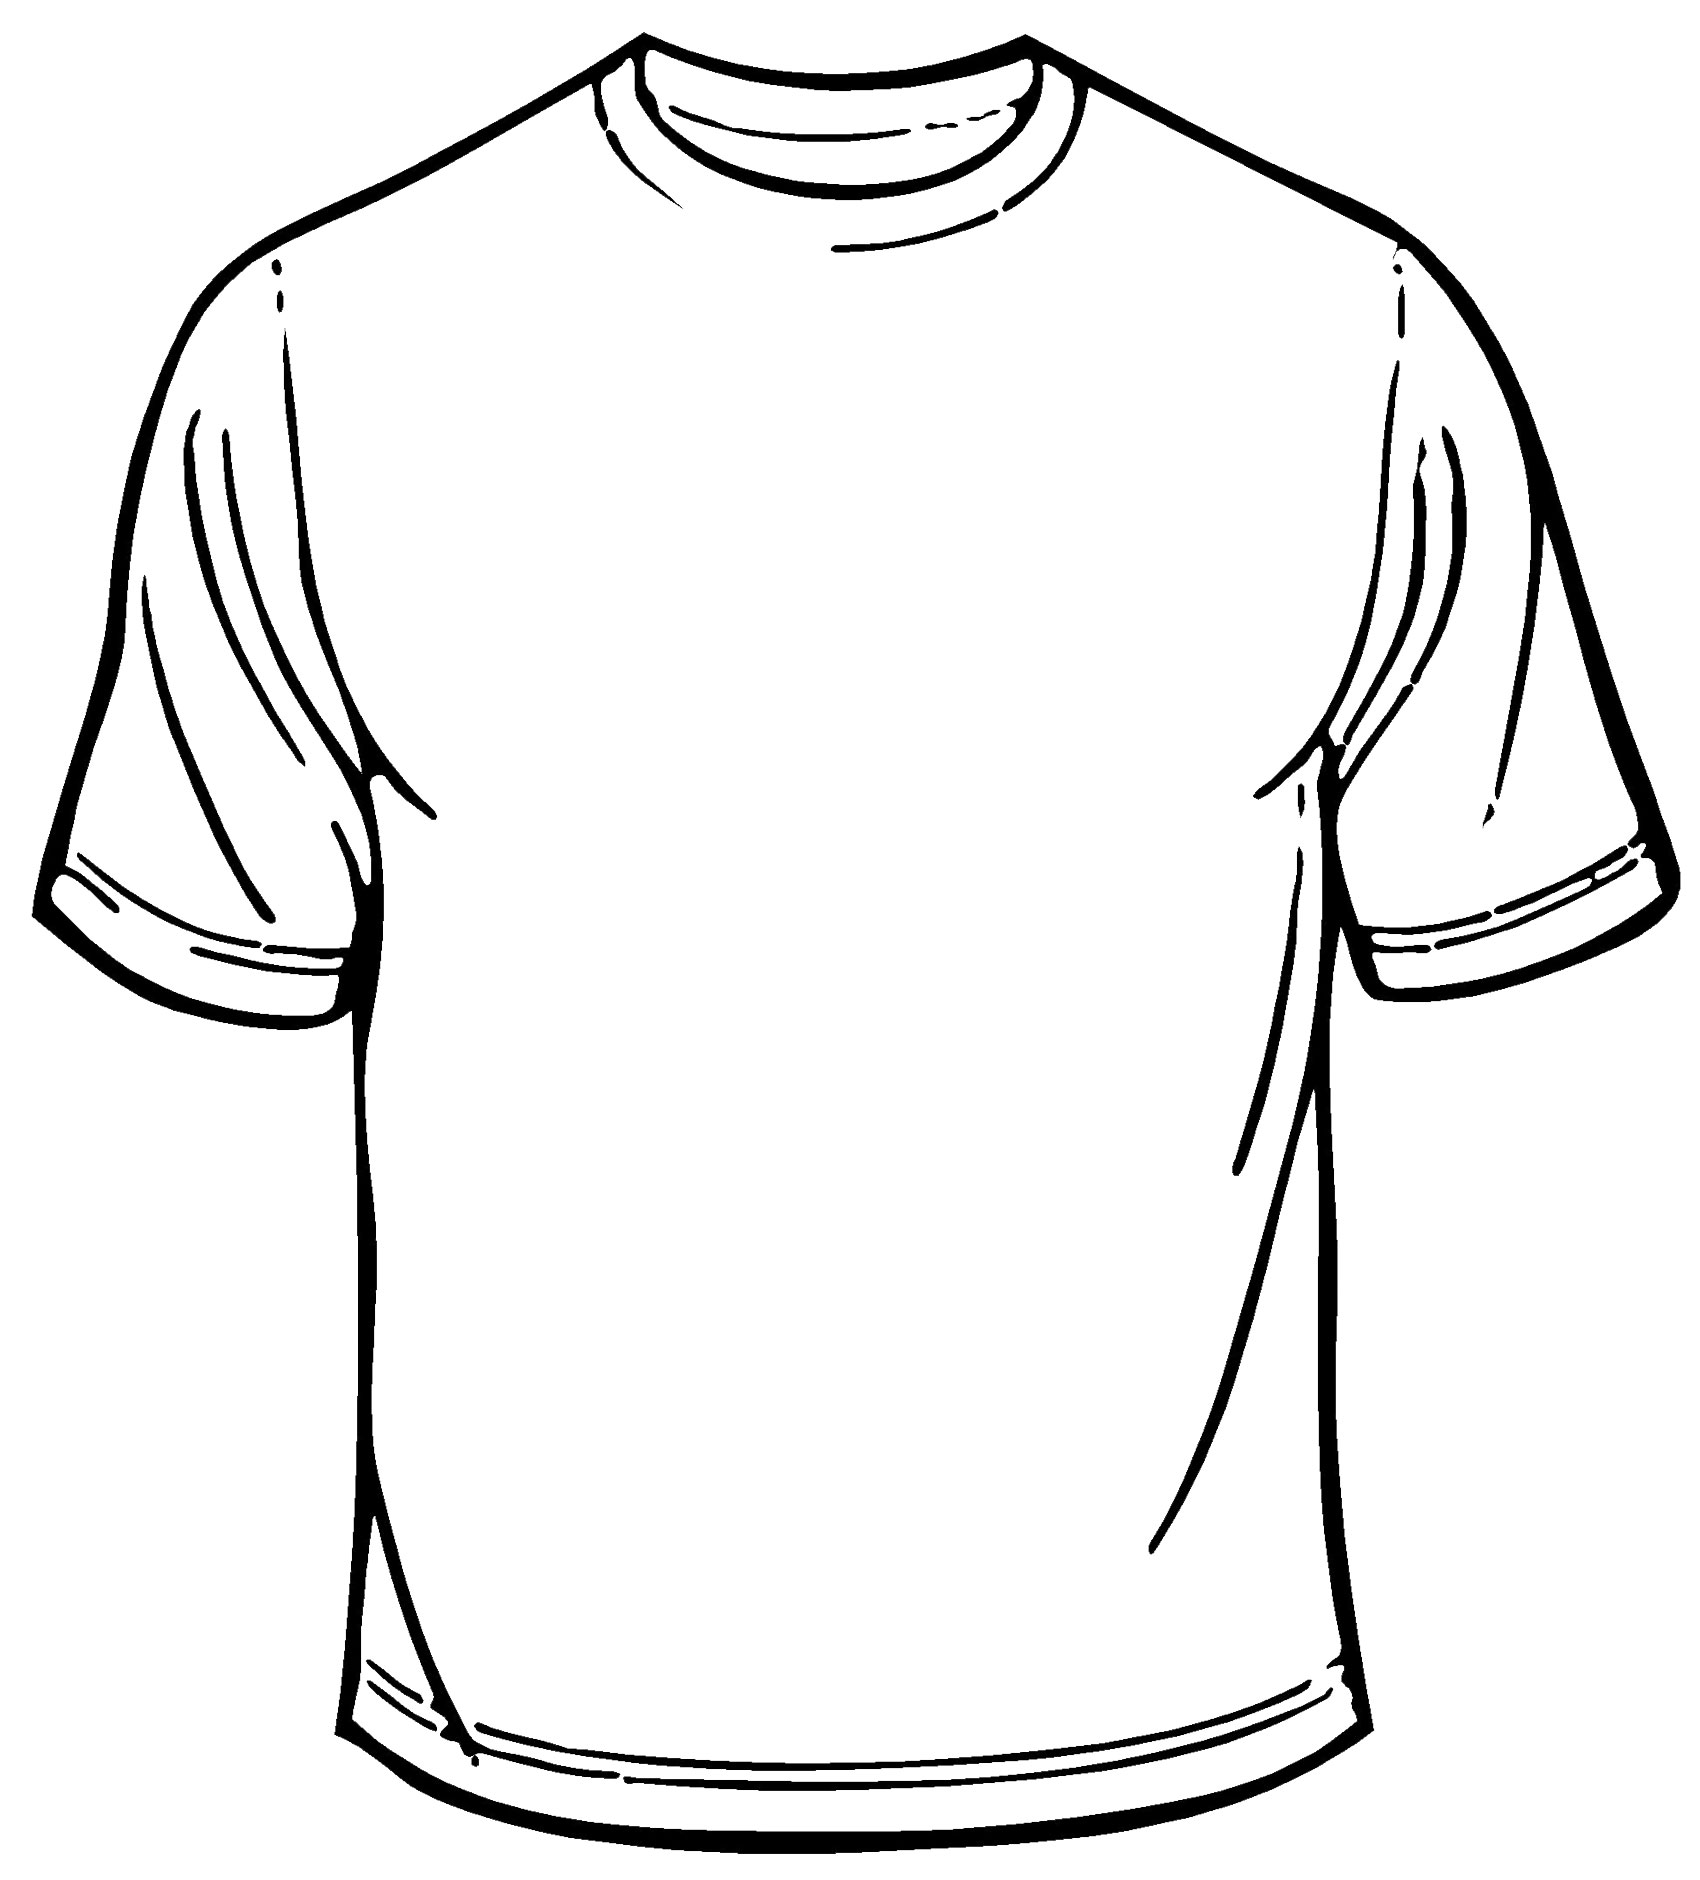 Shirt clipart transparent background. Collection blank t png